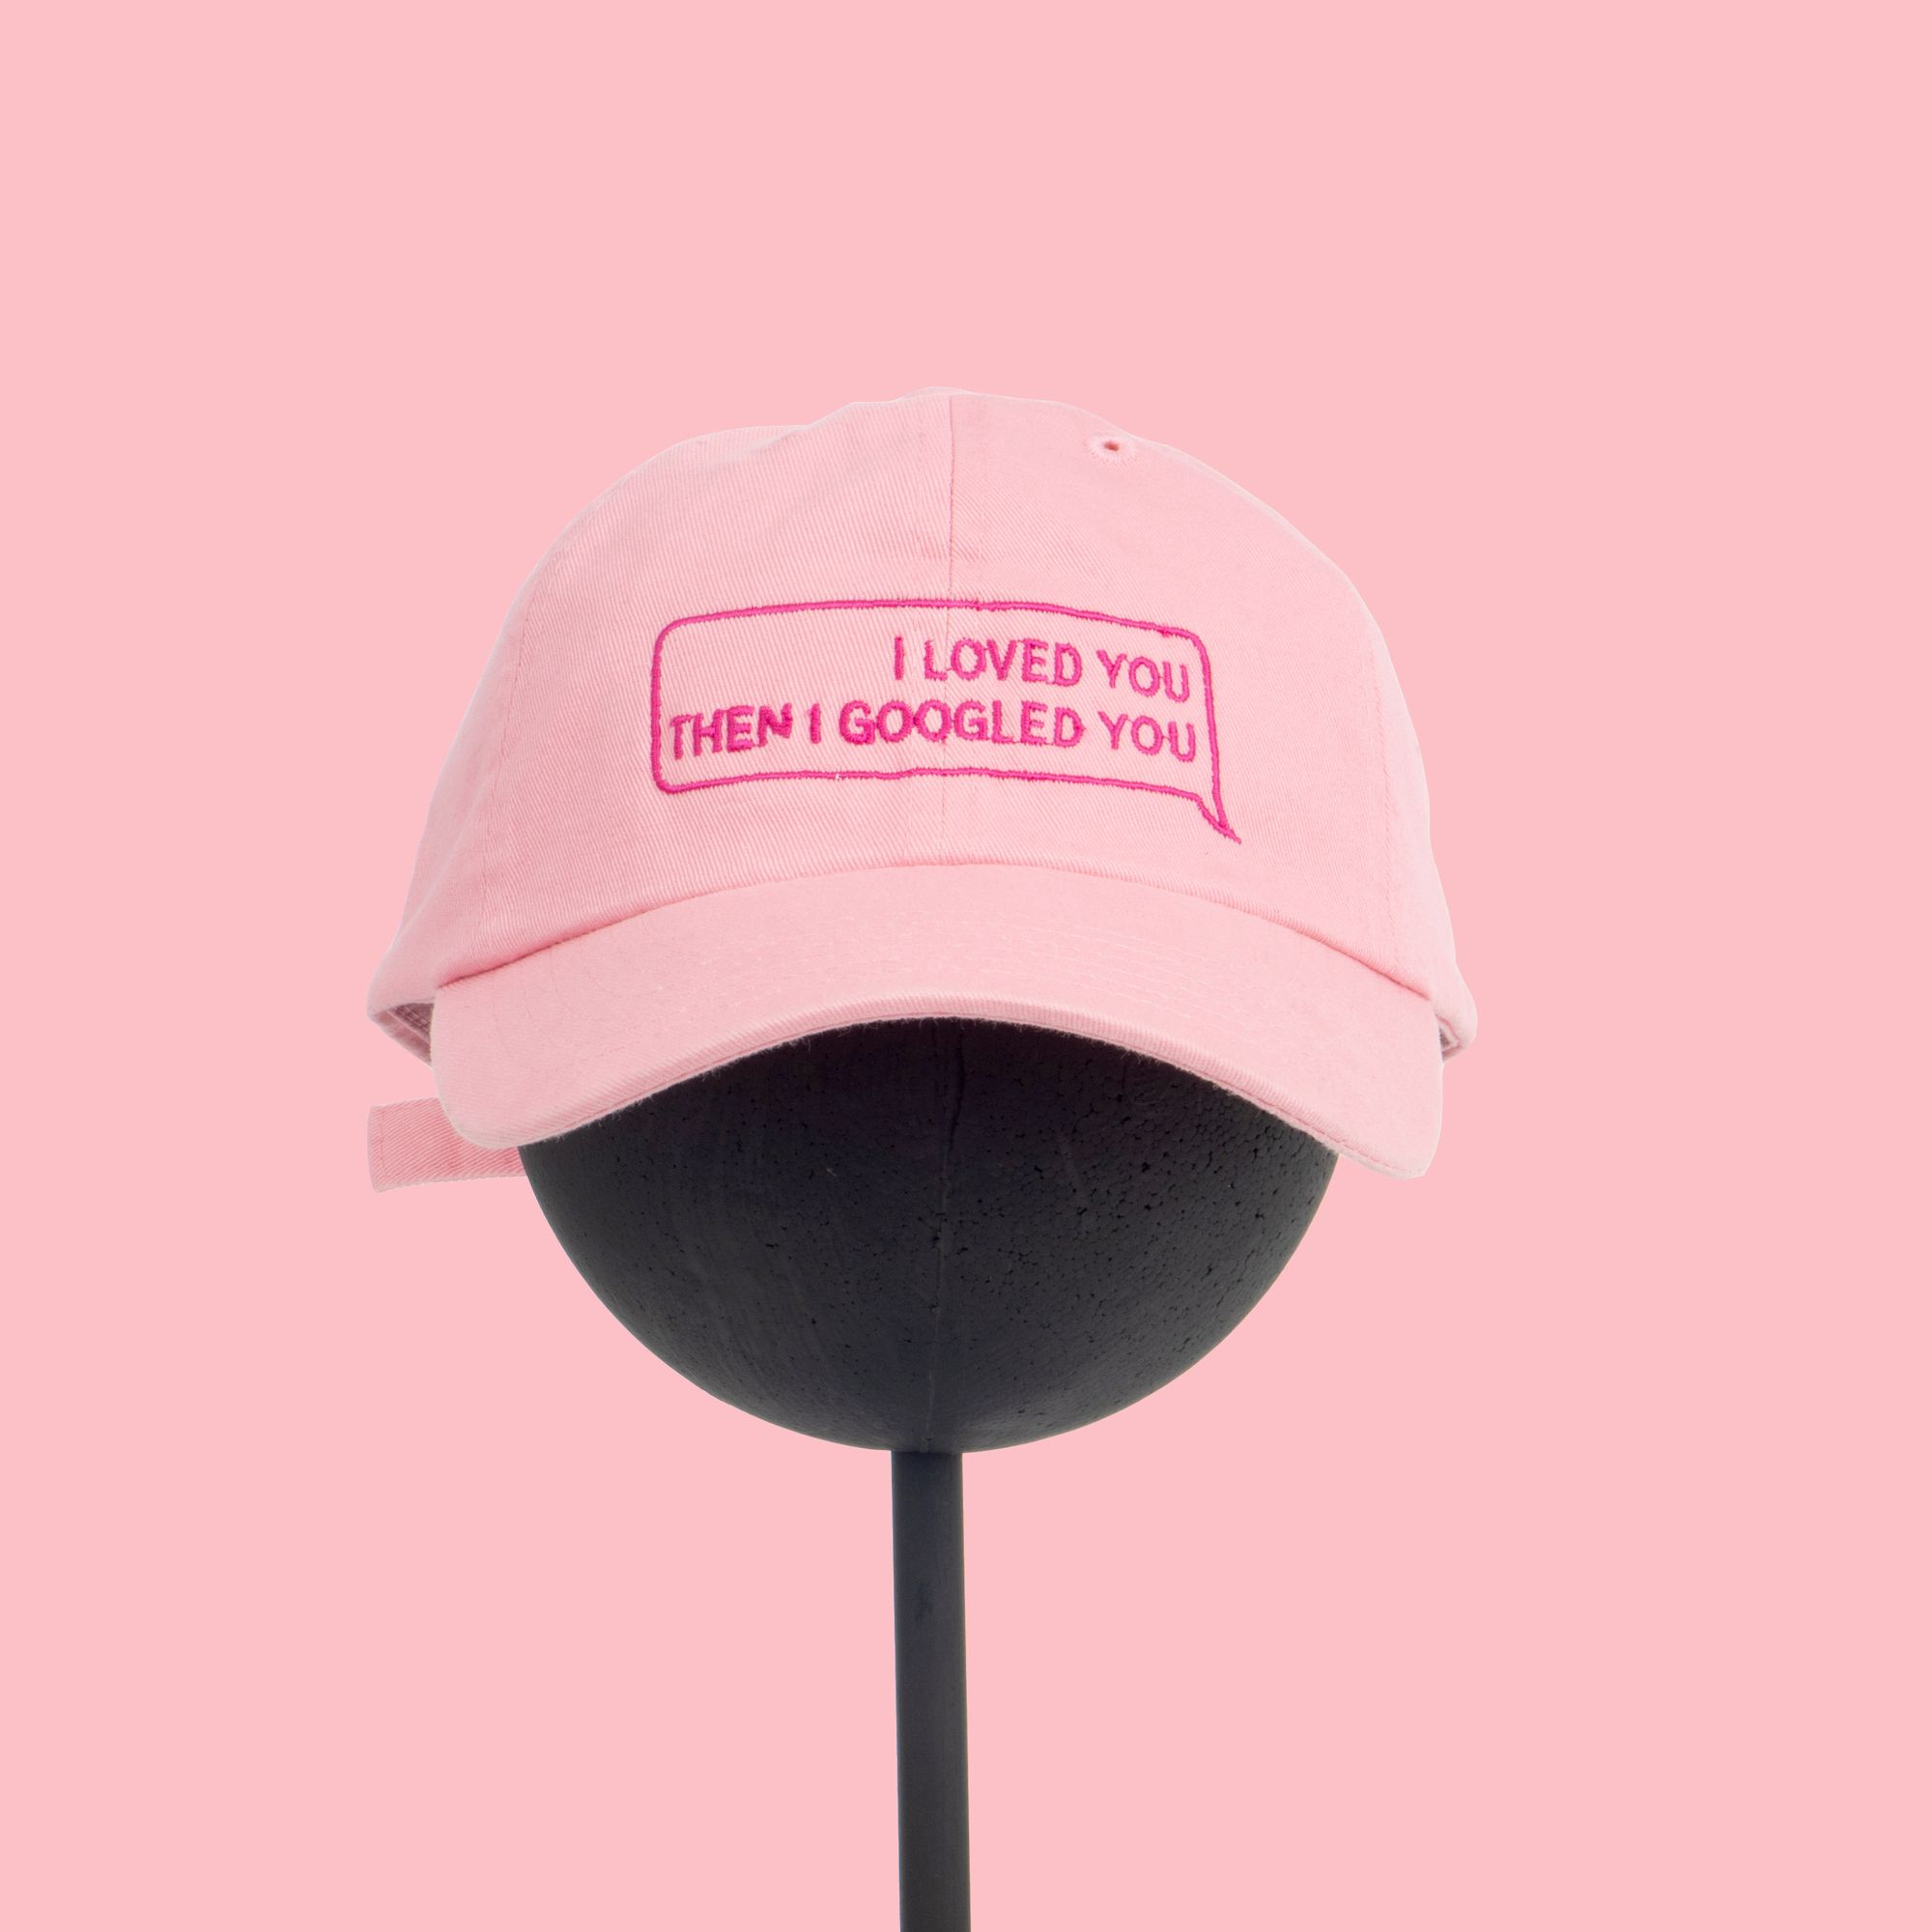 Loved You Googled You Get Some New Hats For Summer Like Our Googled You Hat In Pink And Other Colors Designed And Made Insta Fashion Fashion The Beverly